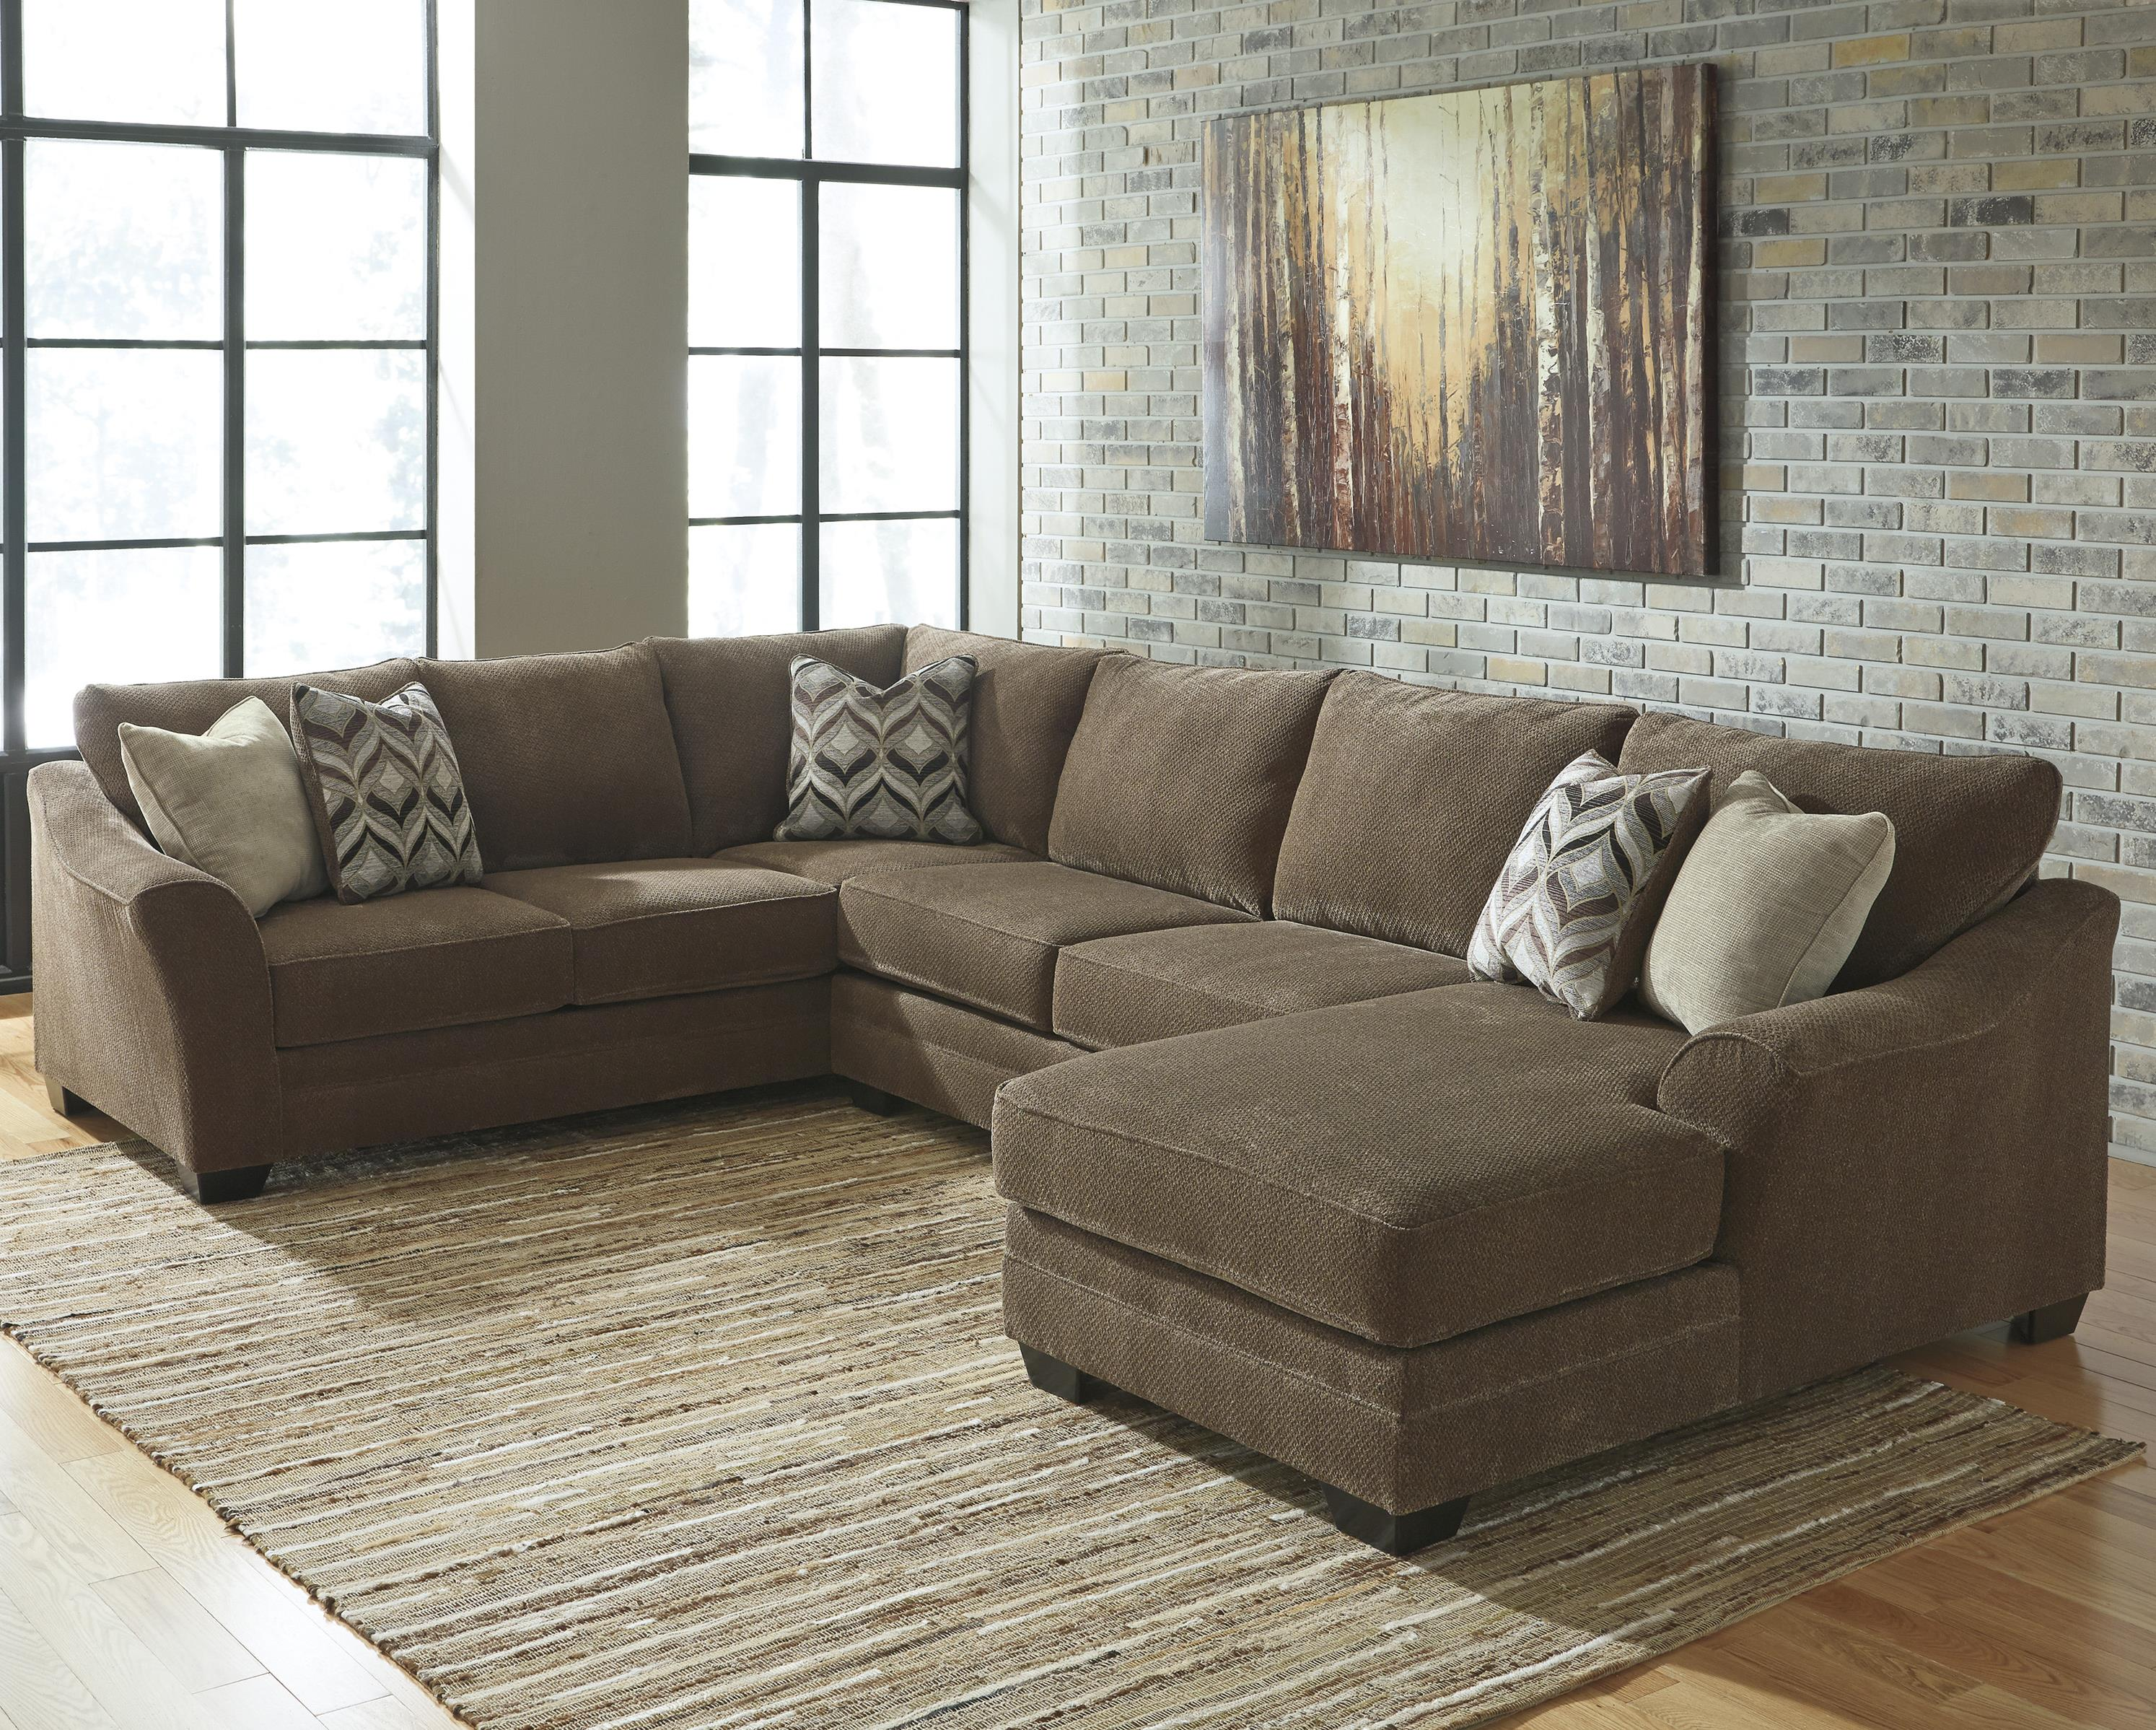 3 Piece Sectional With Right Chaise